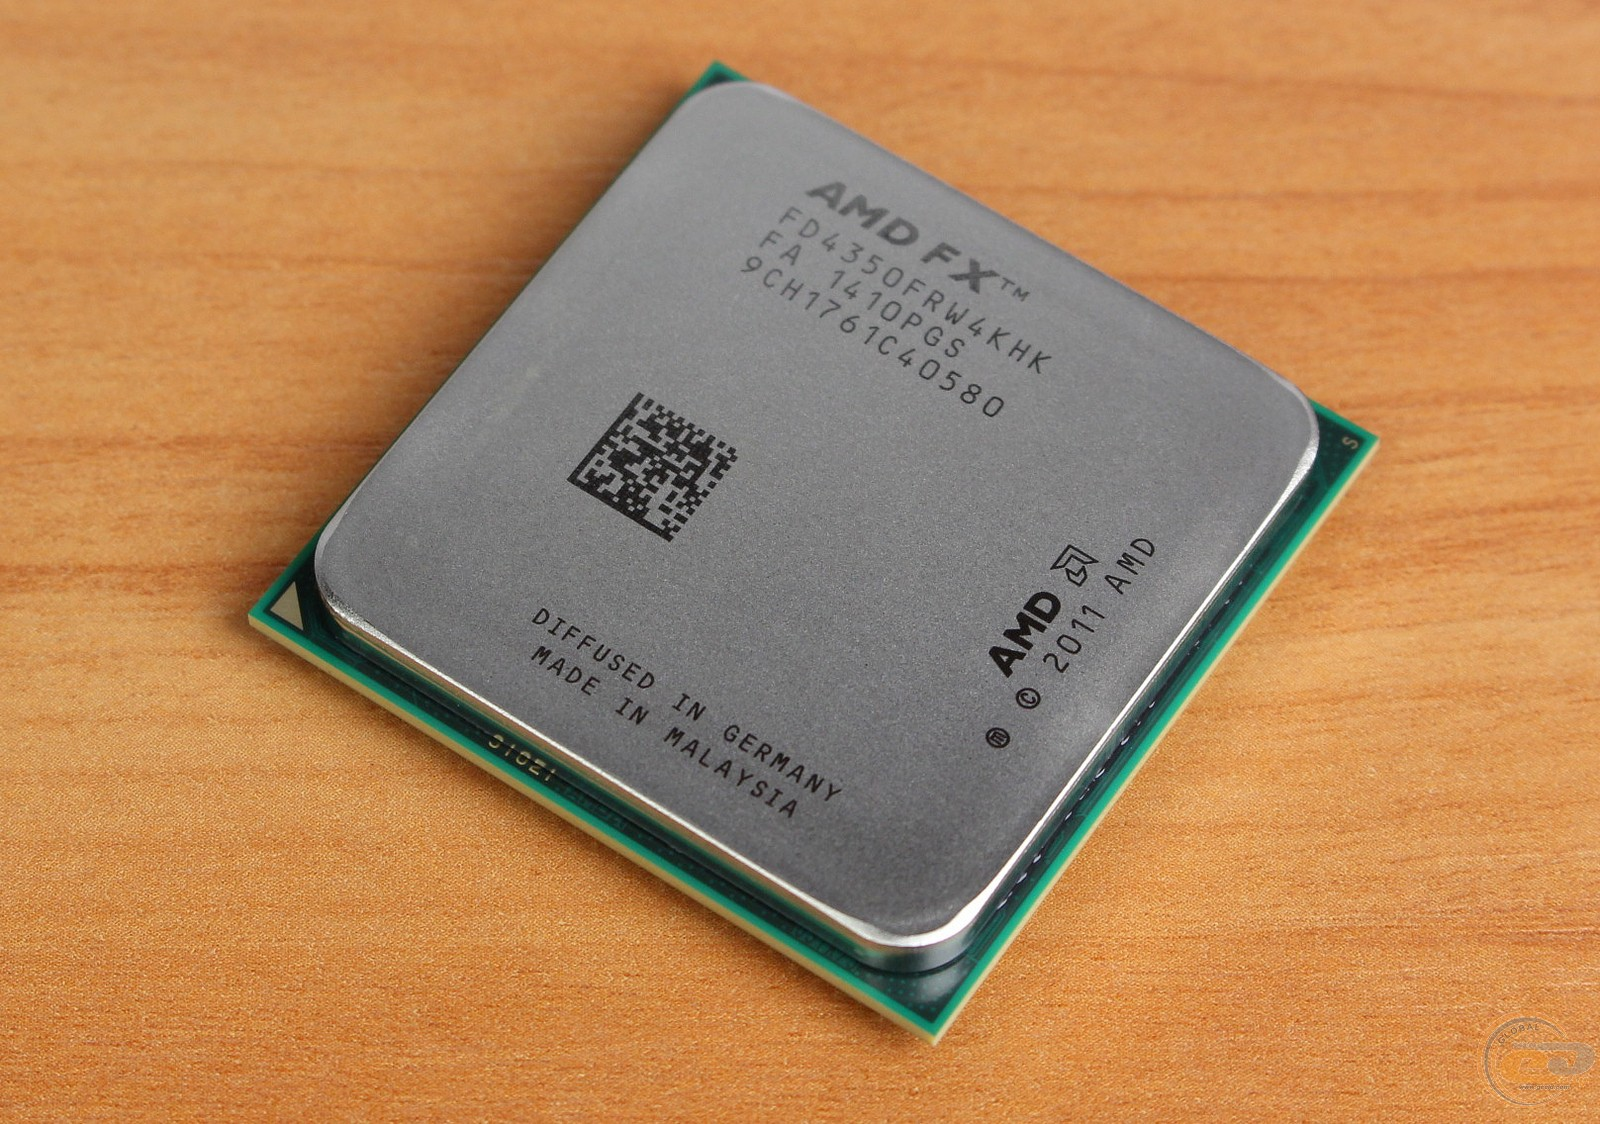 AMD FX-8350 4.0 GHz 8-Core Socket AM3+ OEM Ver Processor CPU with Thermal Paste 4.2 GHz Turbo